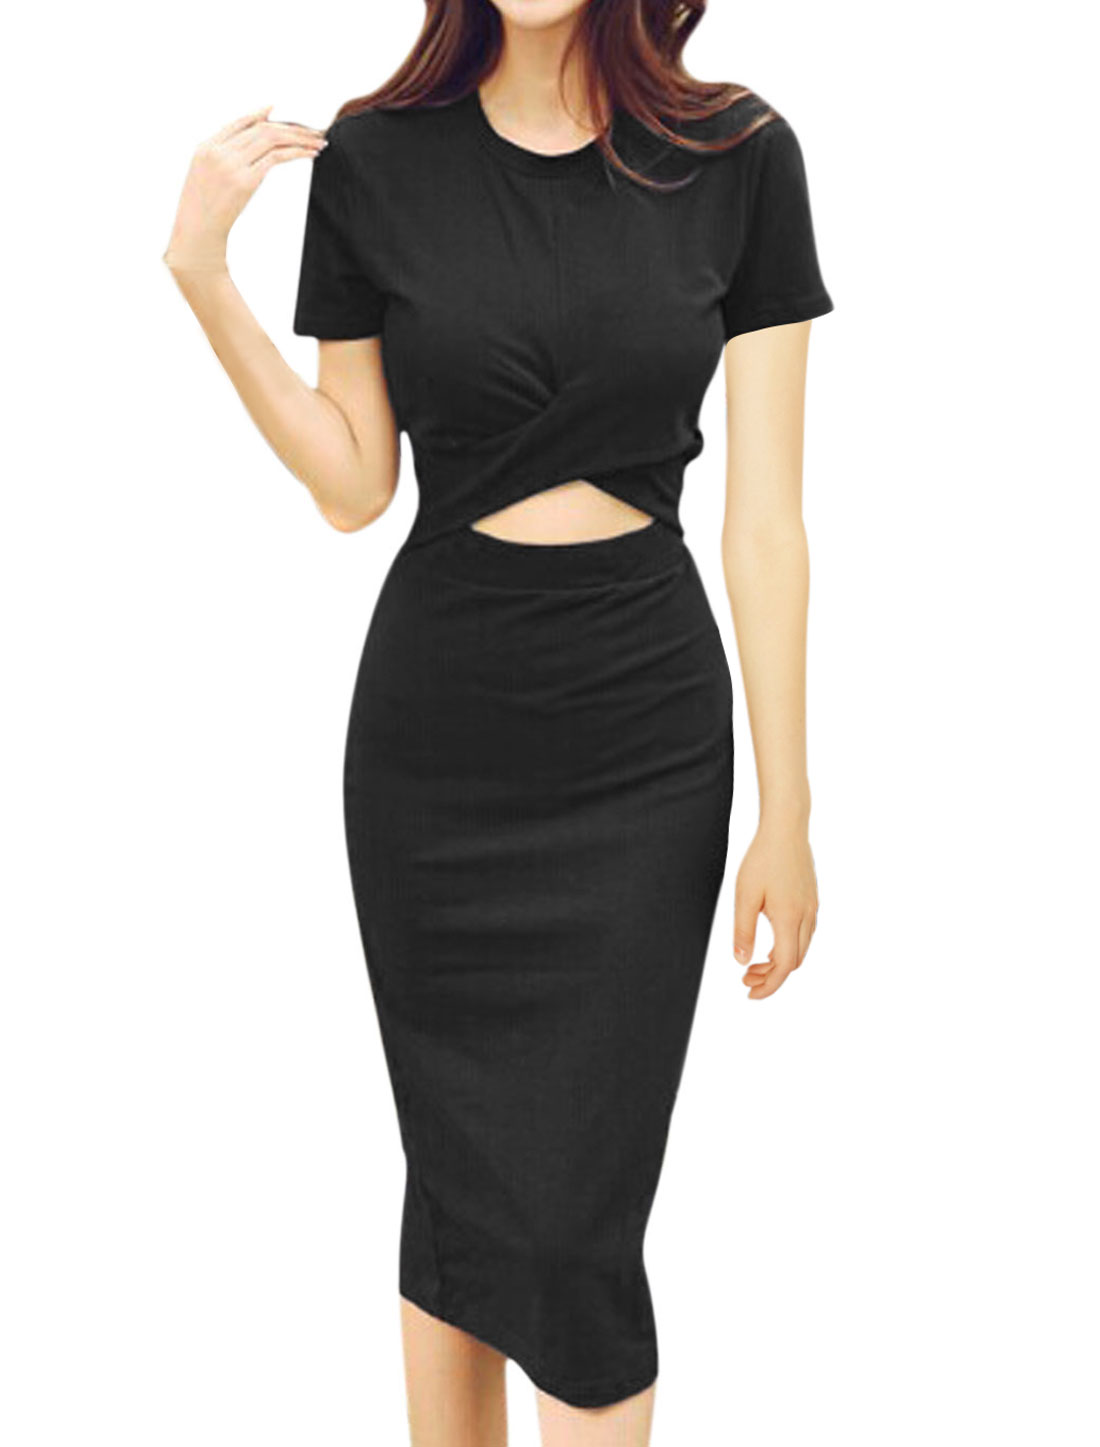 Ladies Short Sleeve Round Neck Cut Out Split Back Casual Sheath Dress Black M